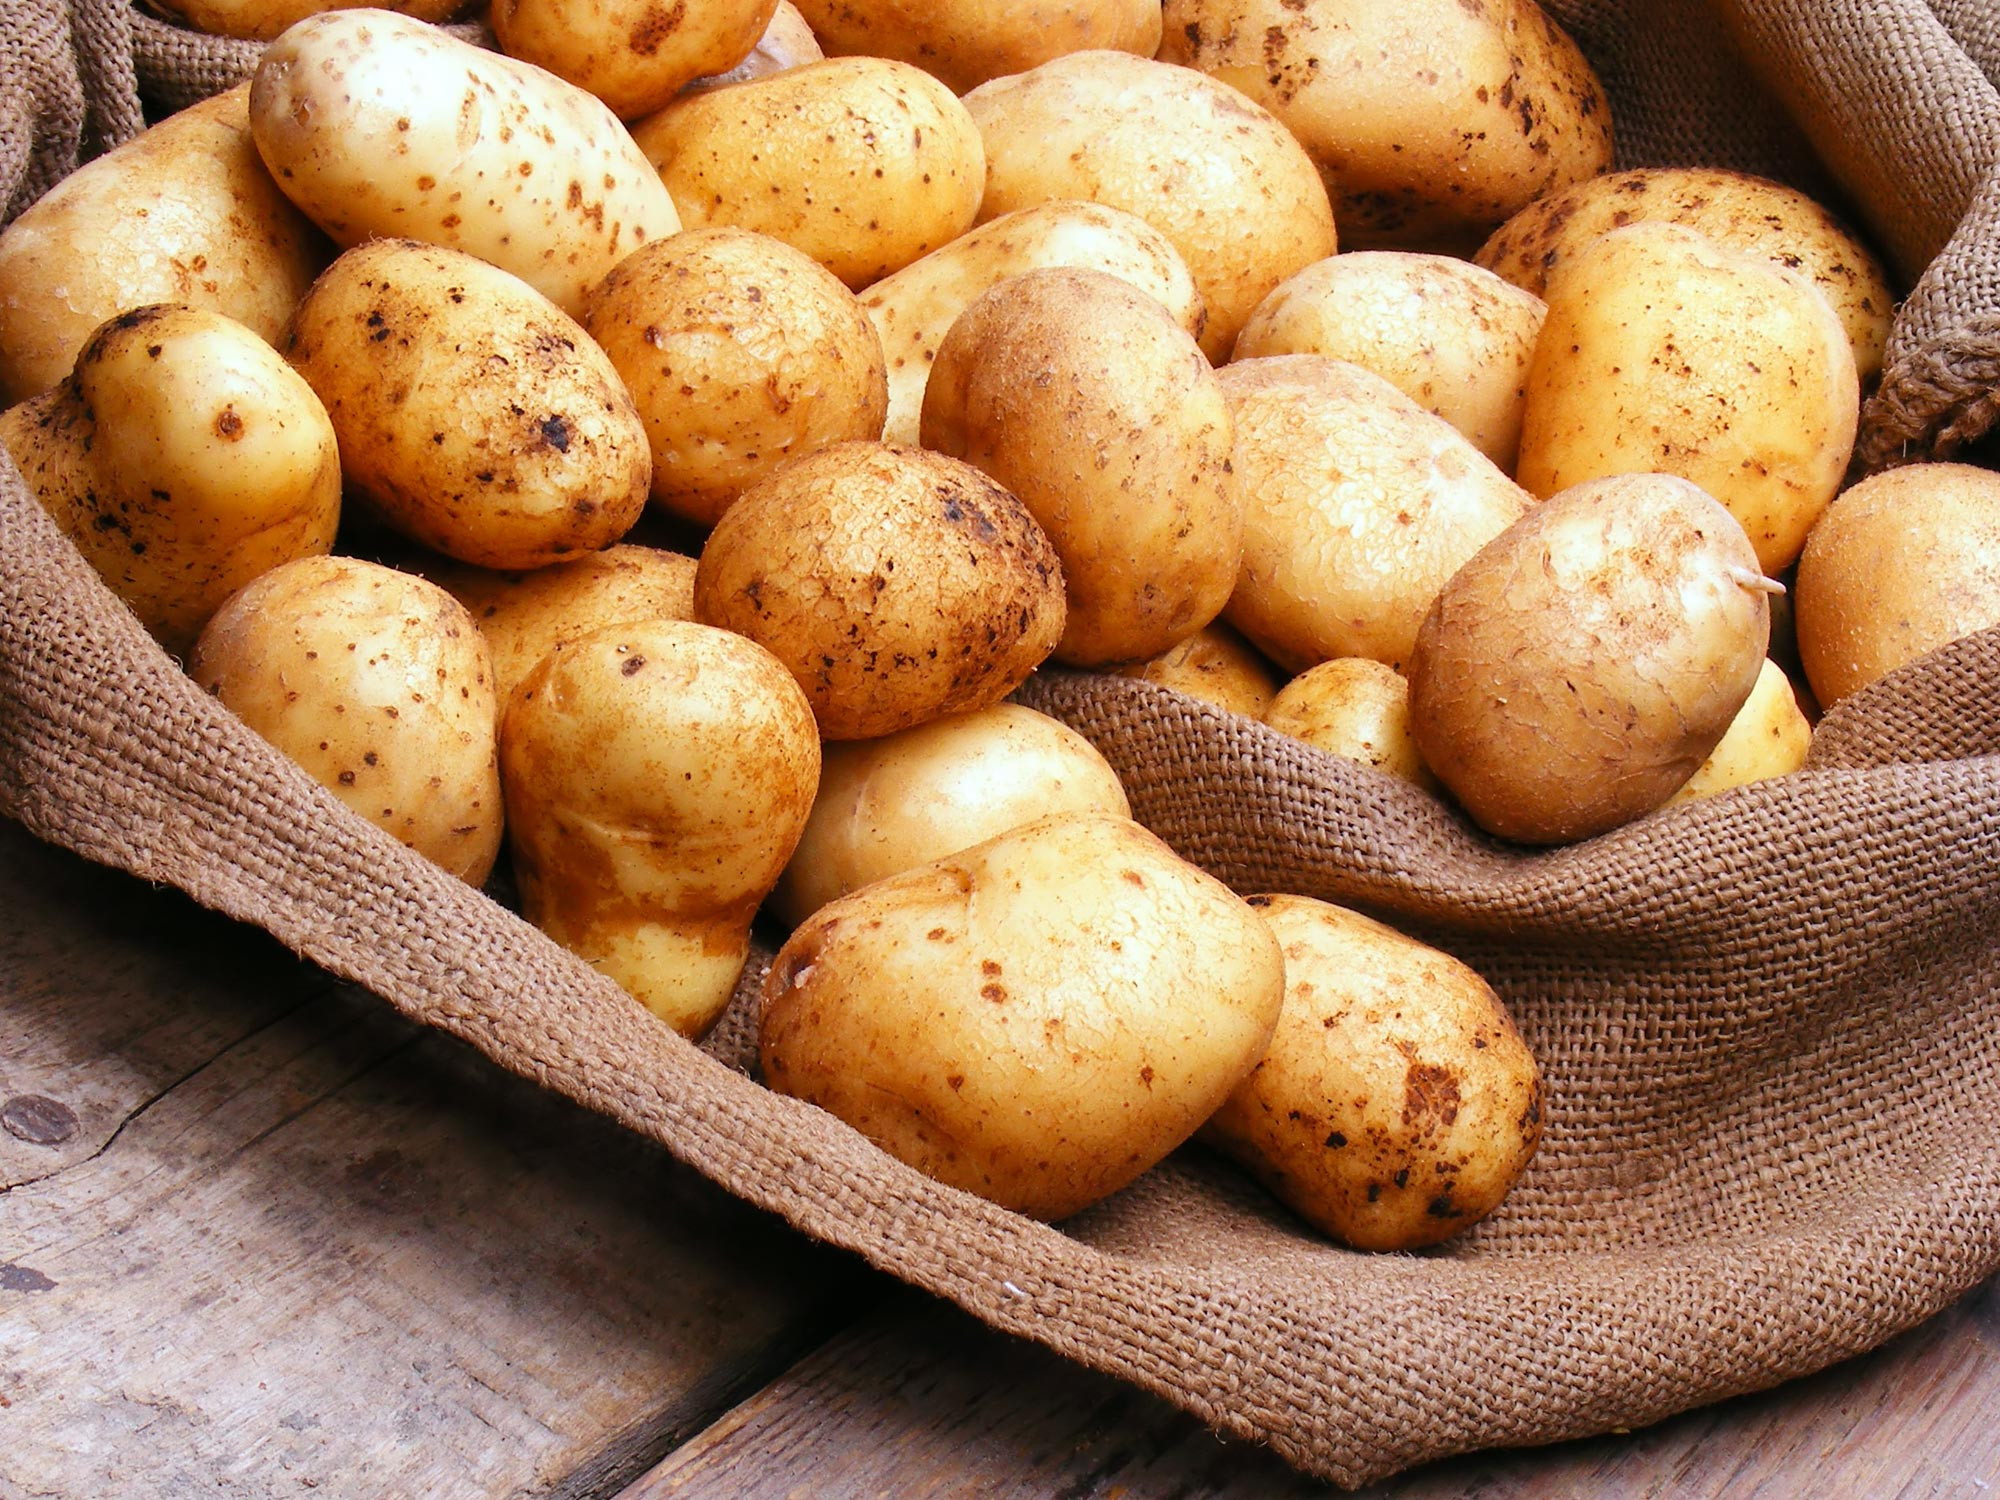 Potato A Vegetable  Potatoes Ve ables